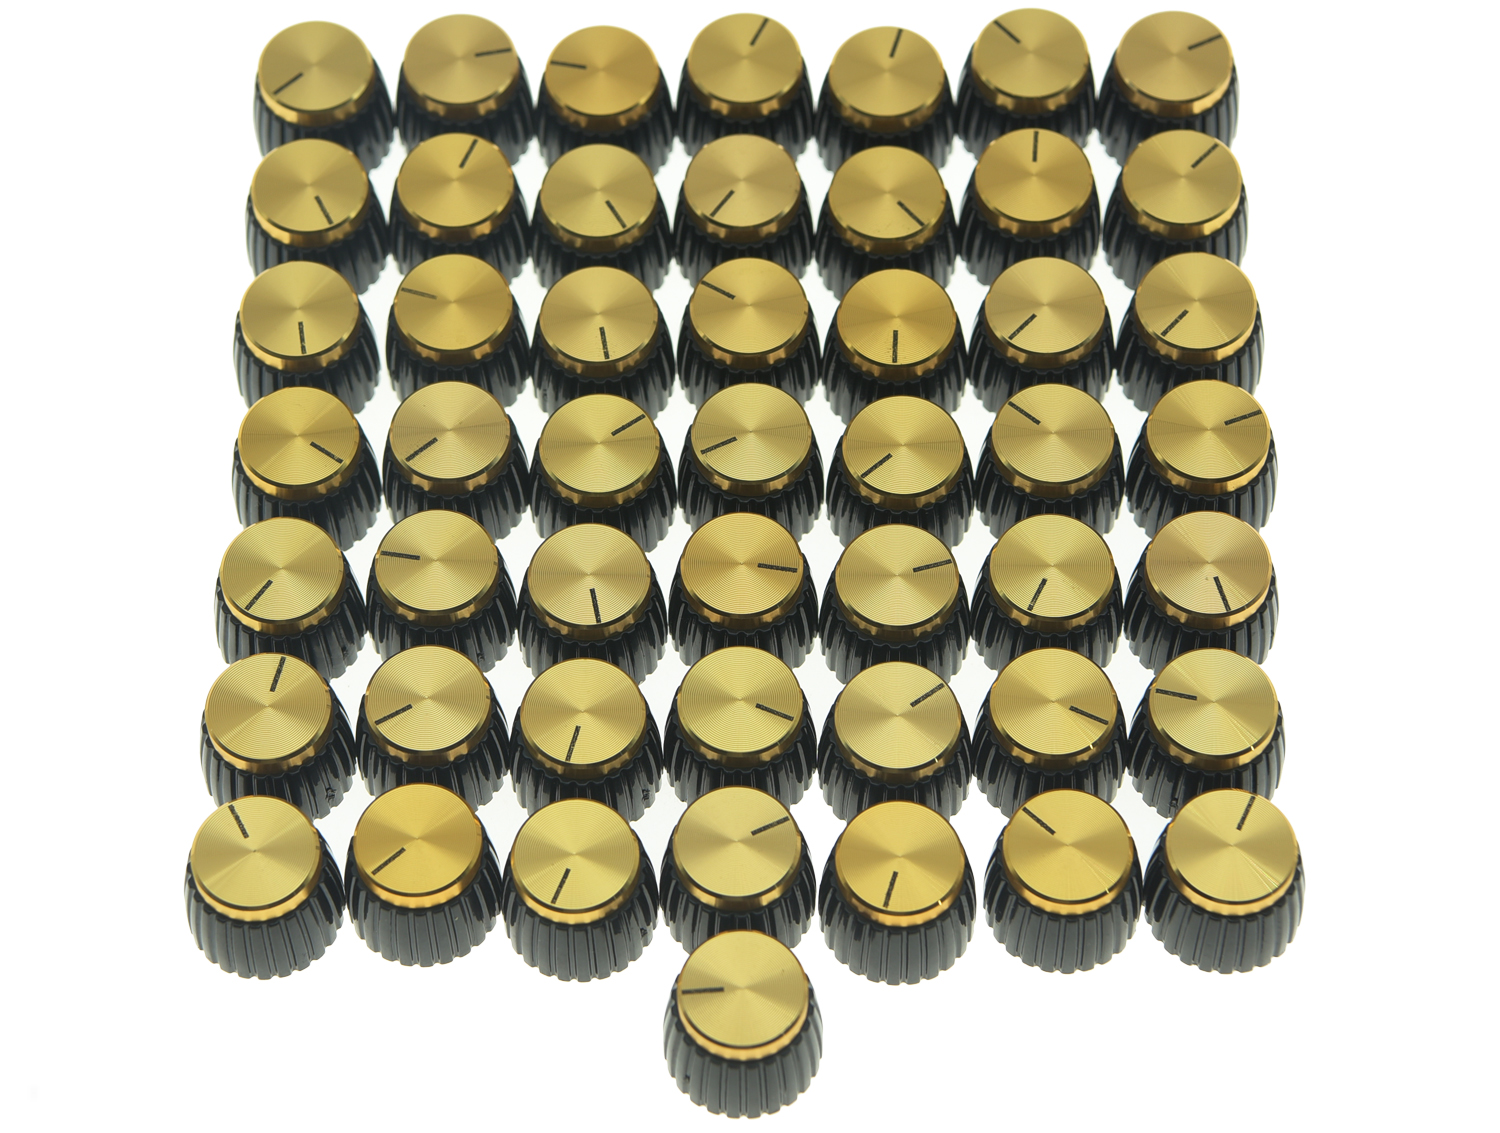 50x Guitar AMP Amplifier Knobs Black W/ Gold Cap Push On Knob Fits Marshall AMP